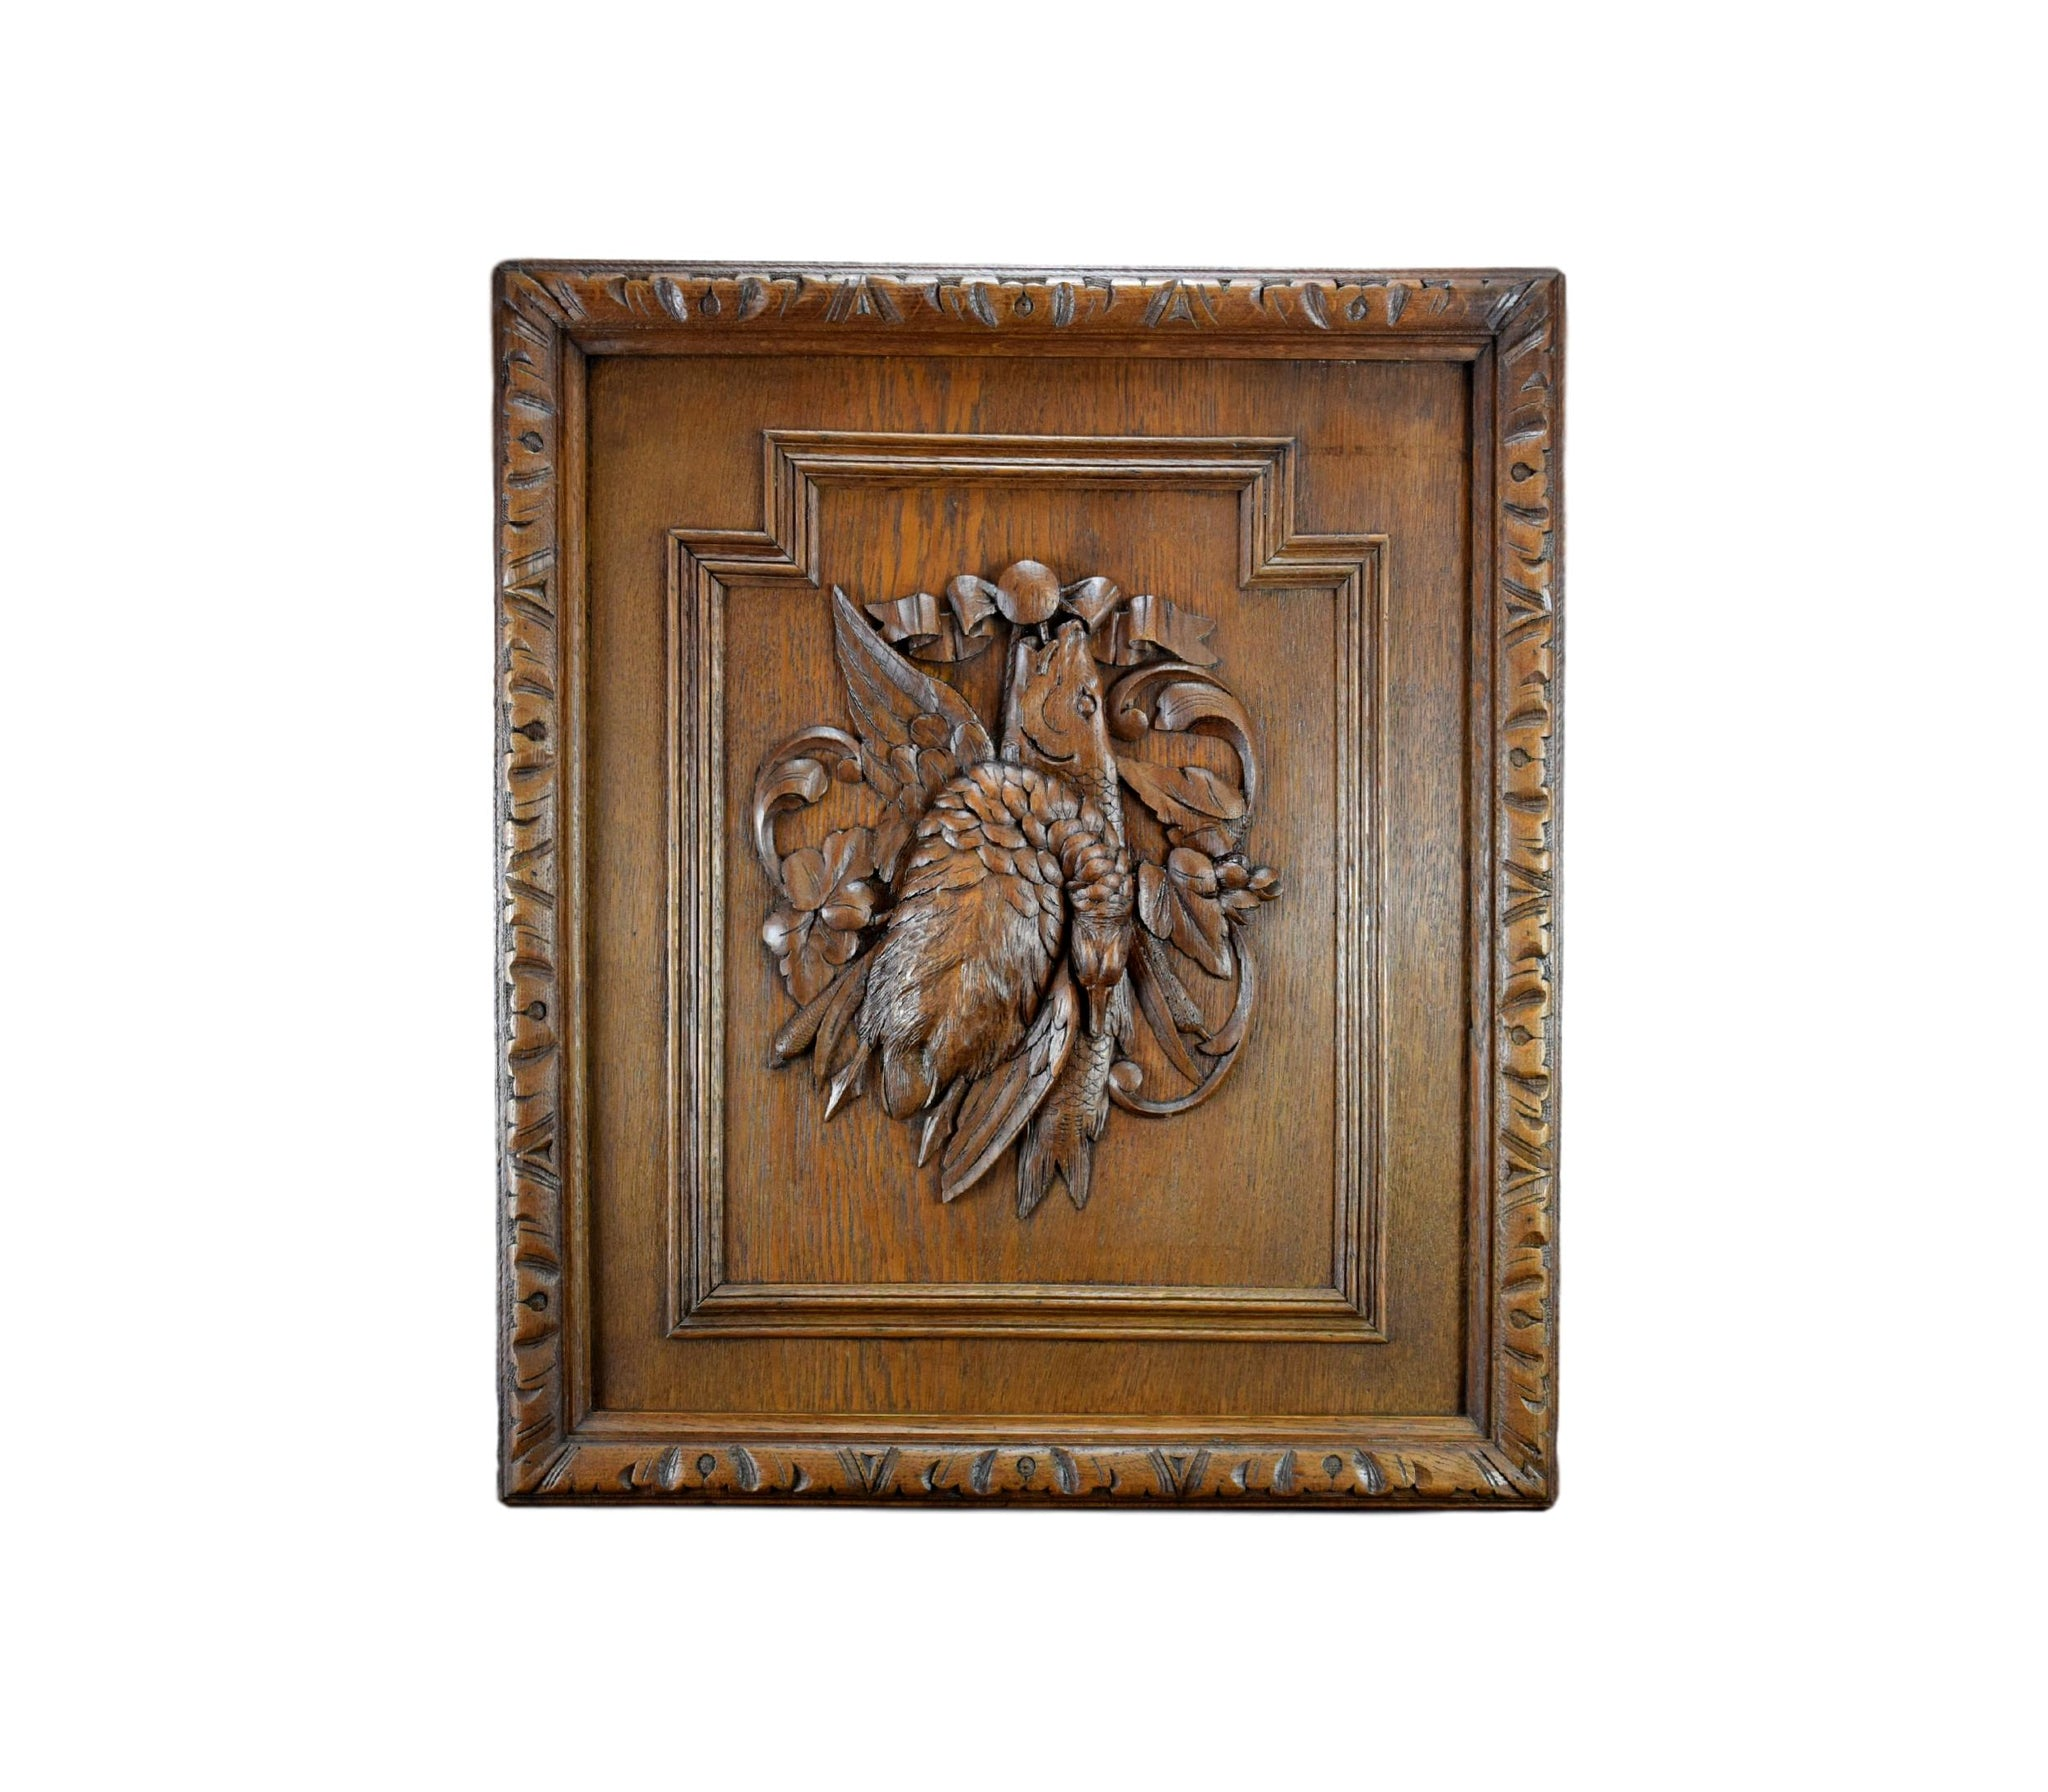 Black Forest Carved Wood Hunting Trophy Wall Panel Game Bird & Fish Plaque